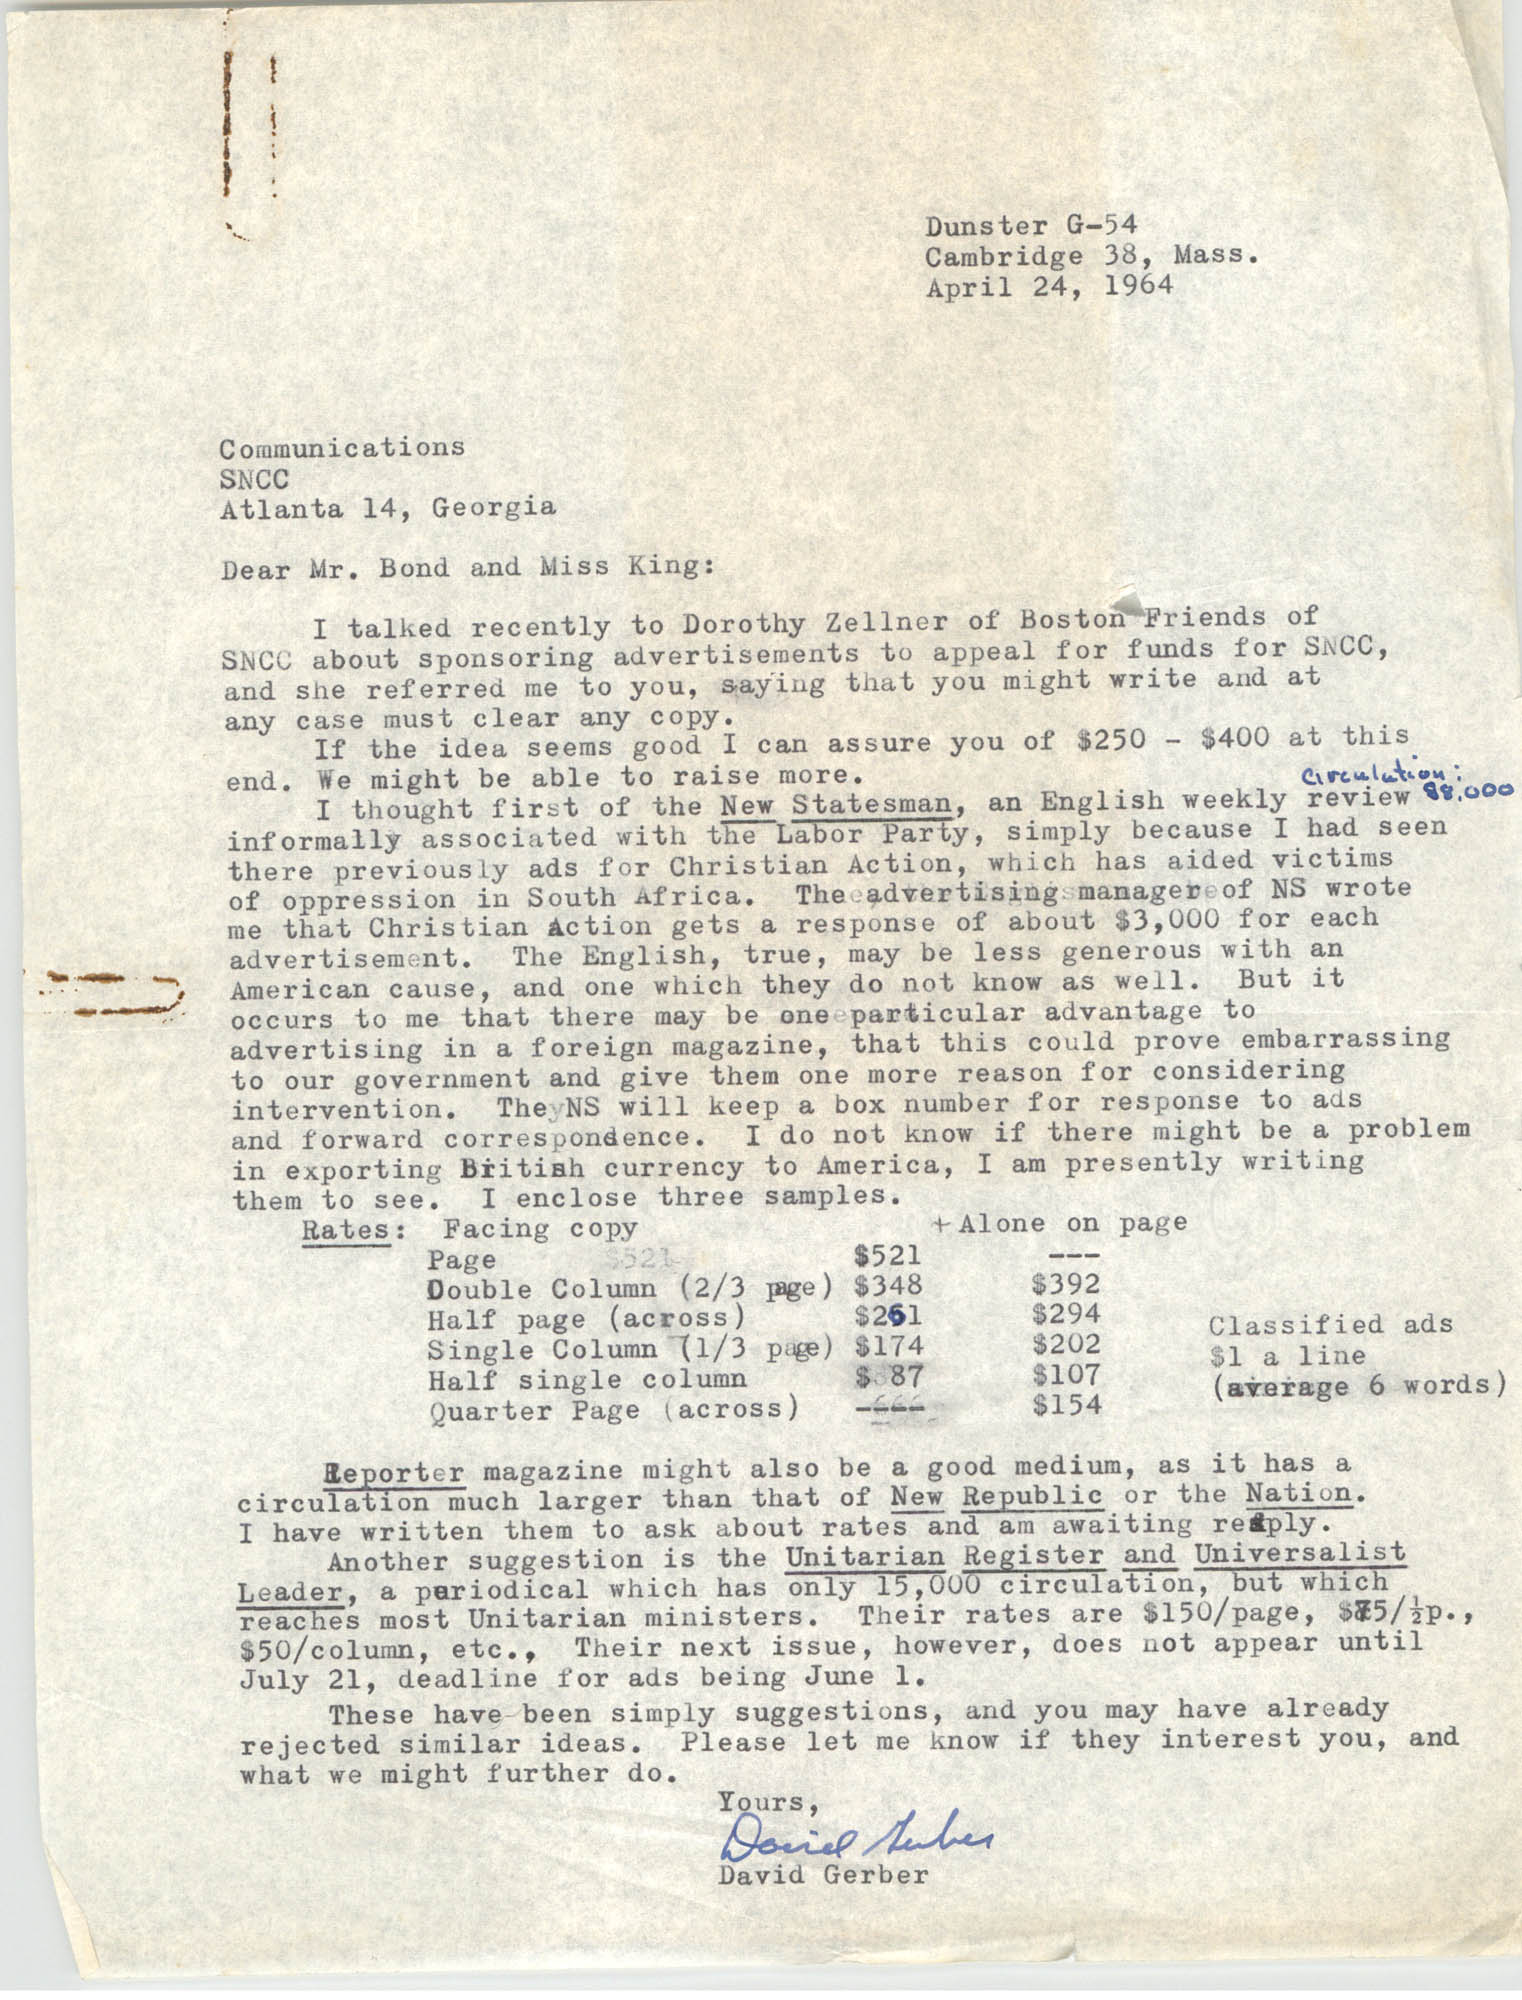 Letter from David Gerber to Julian Bond and Mary E. King, April 24, 1964